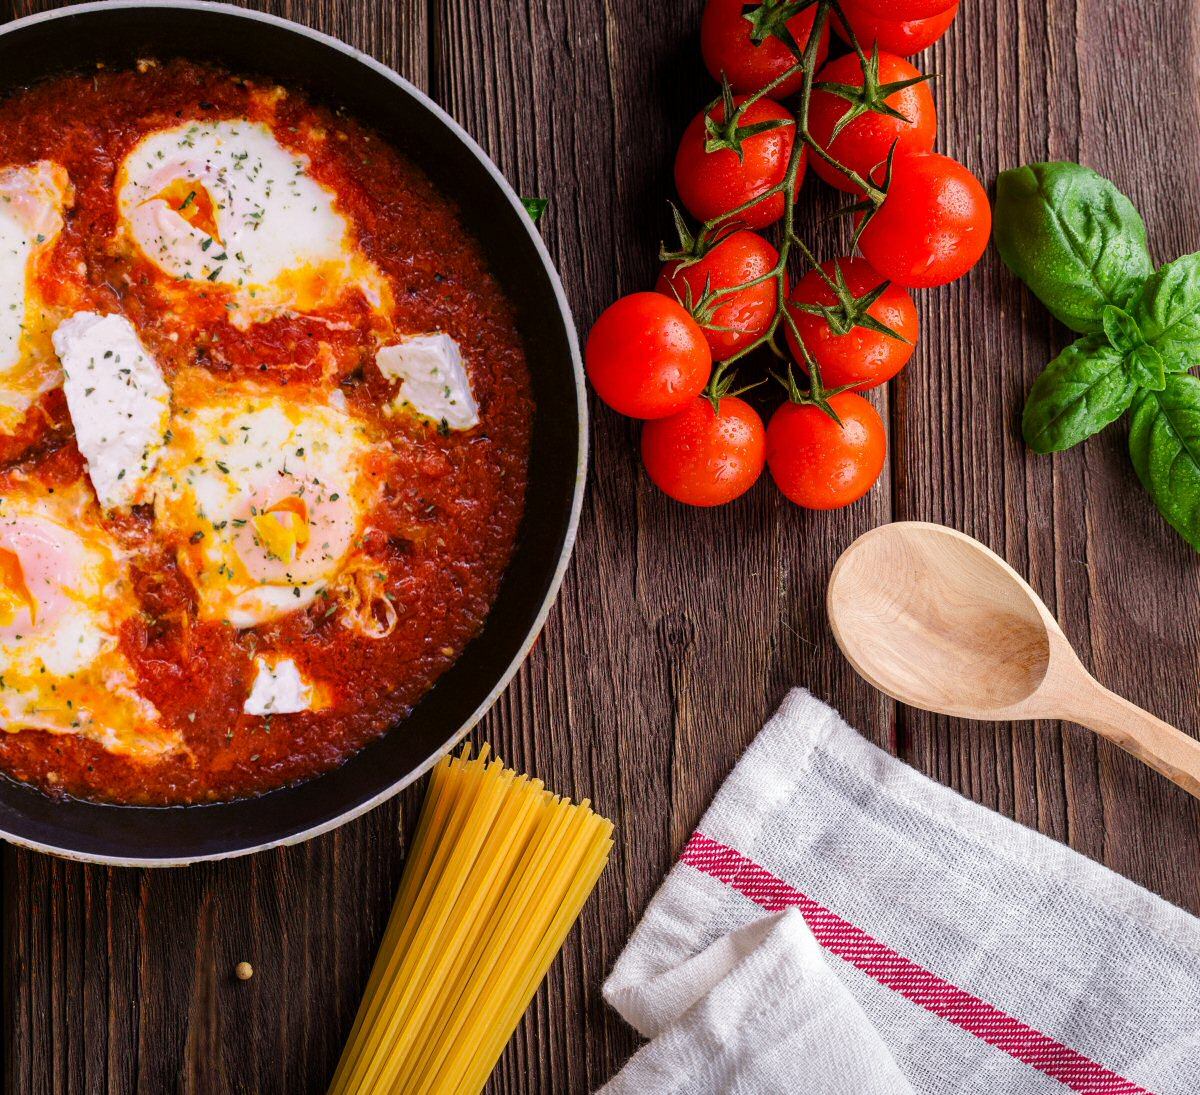 These tips will have you cooking a delicious meal at home in no time!